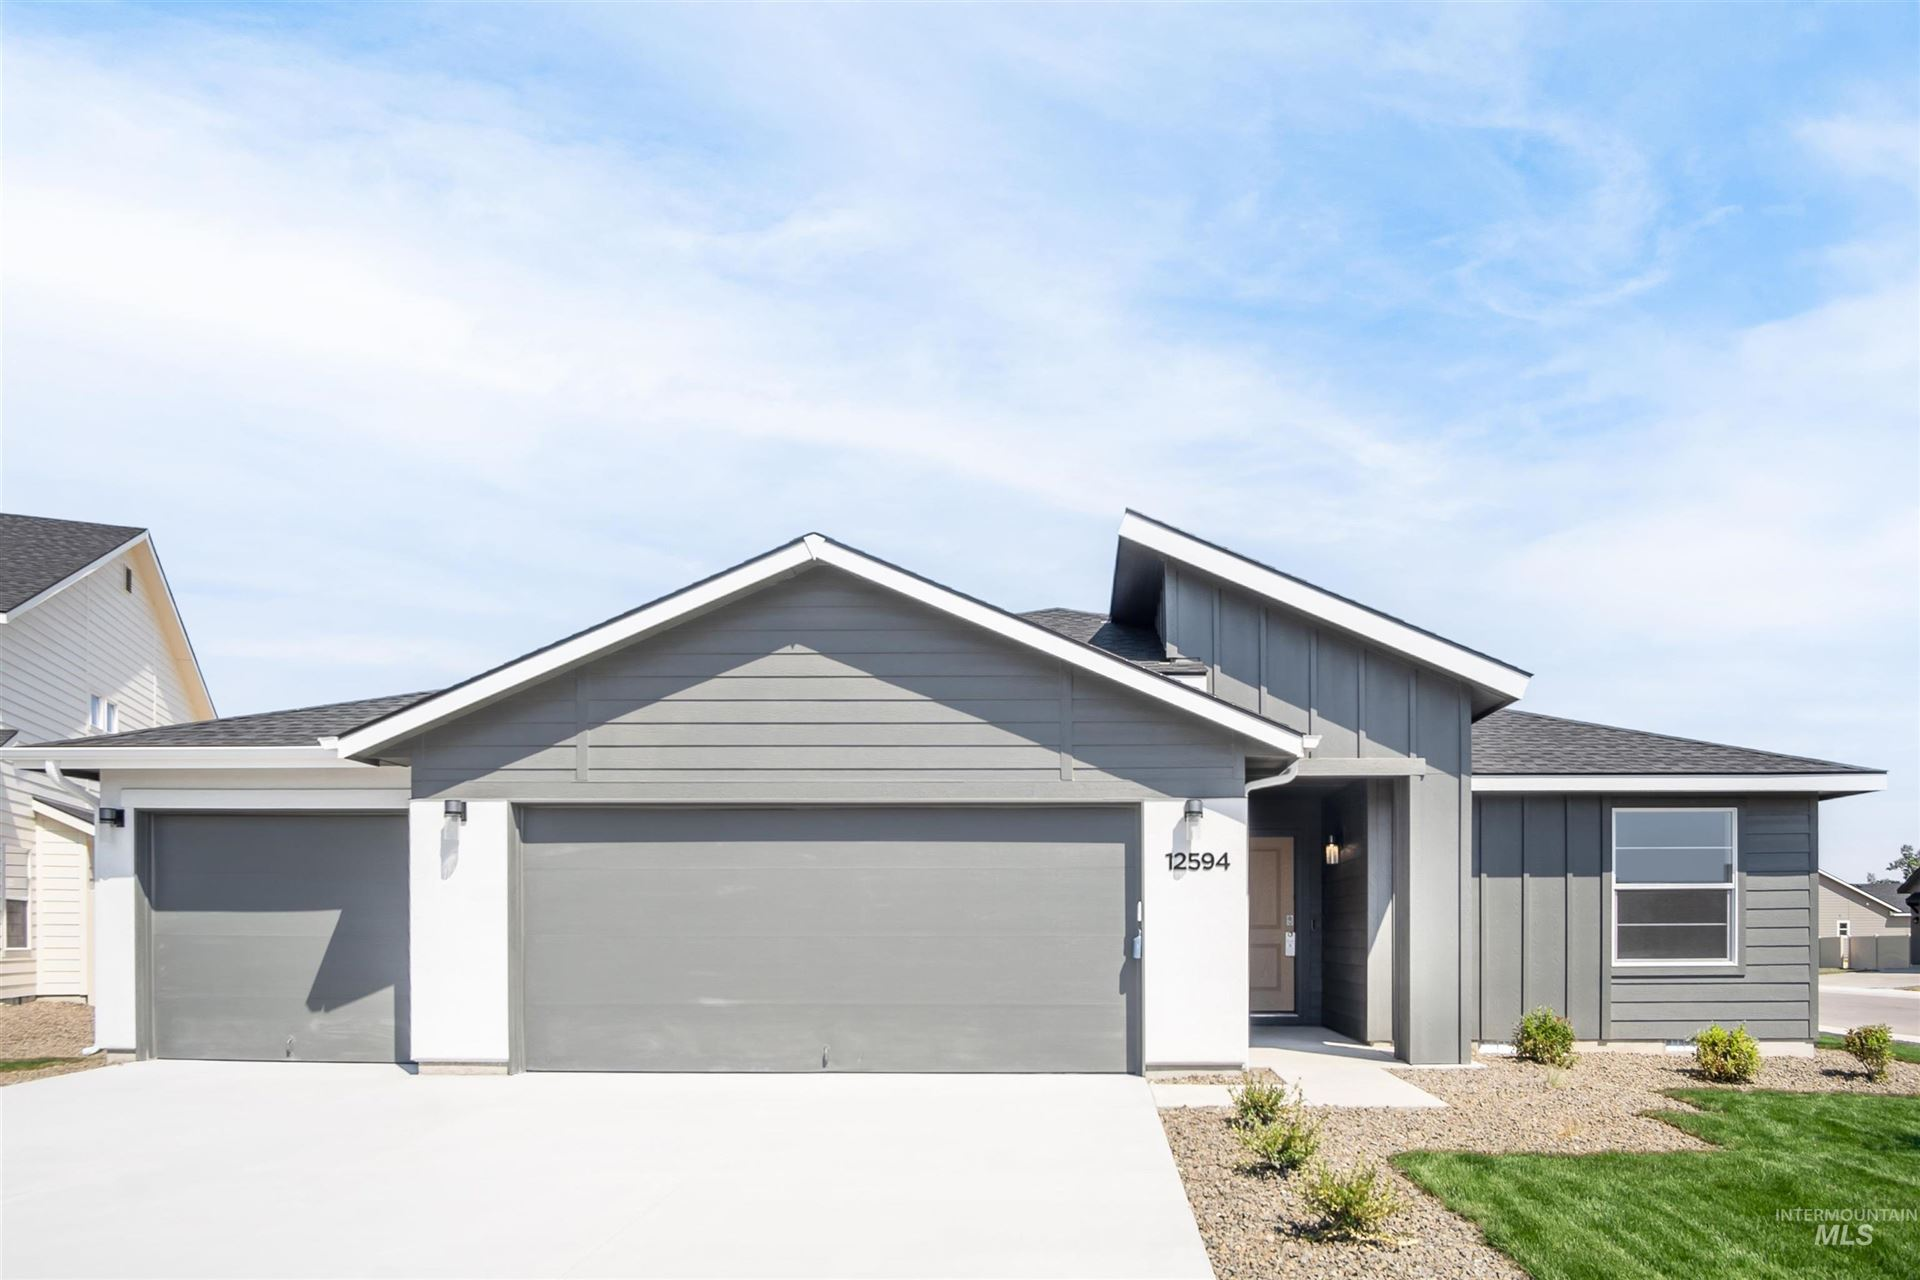 Photo of 12594 Rueppell Court, Nampa, ID 83651 (MLS # 98807074)